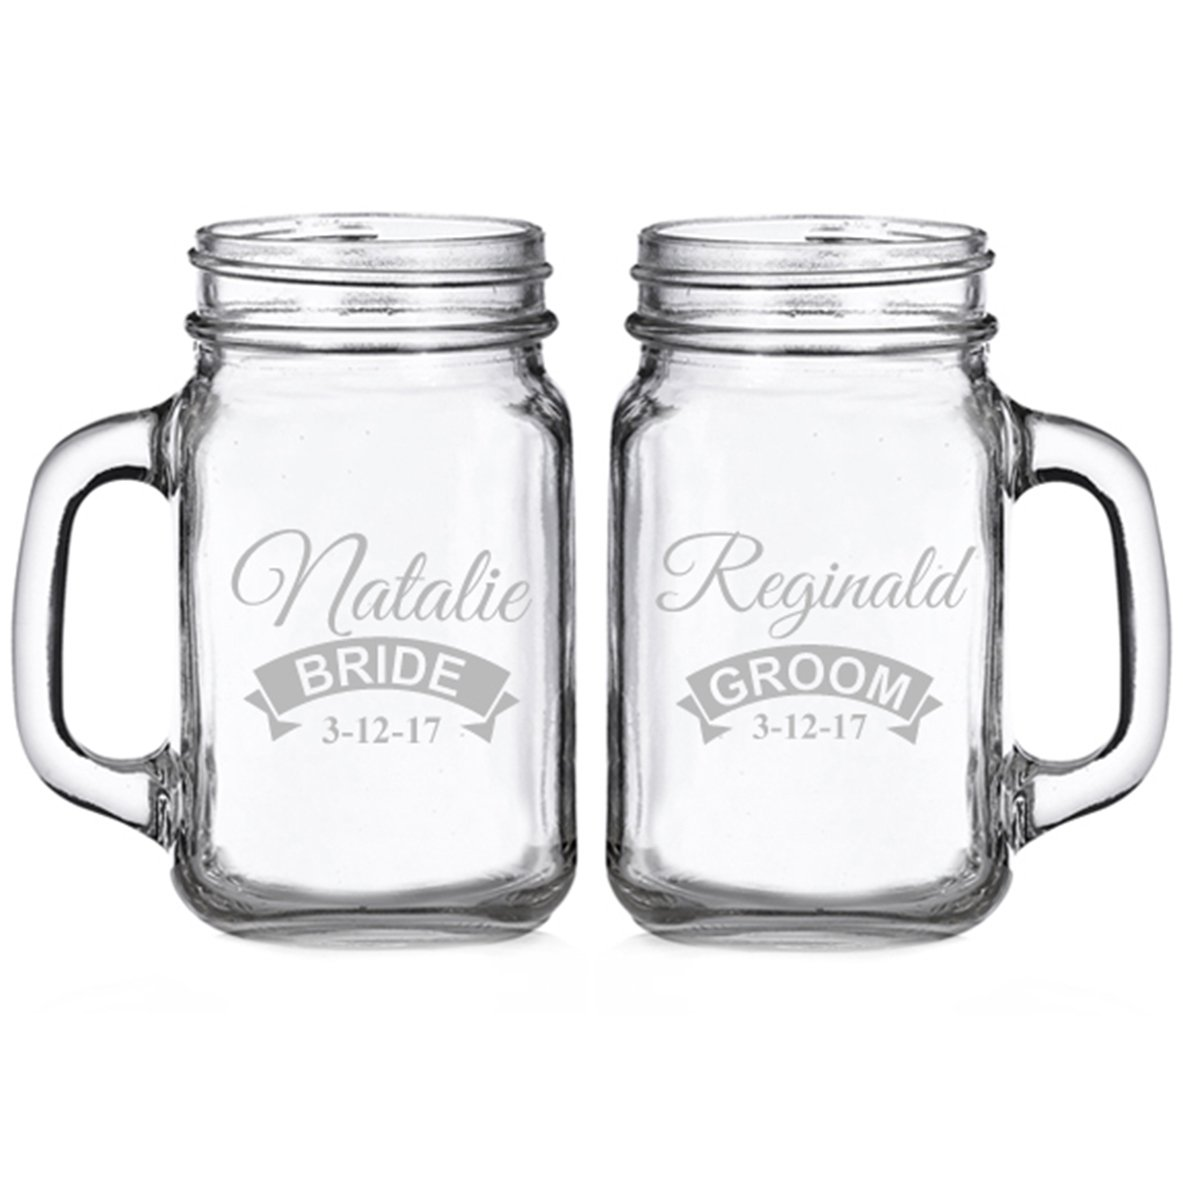 Bride and Groom Rustic Banner Personalized Glass Mason Mugs (set of 2)